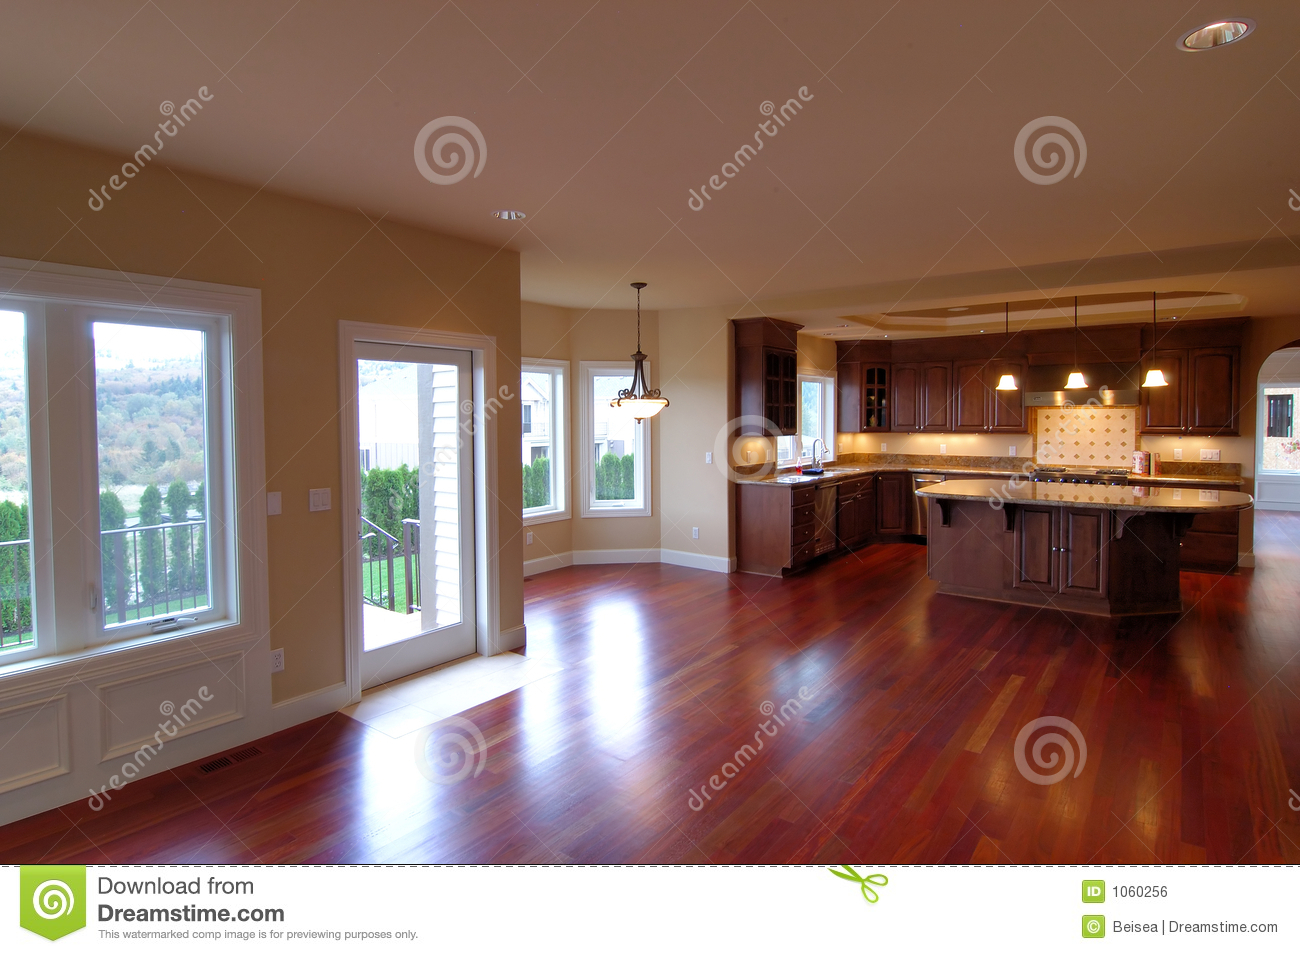 Luxury american house interior no 3 royalty free stock for American house interior decoration